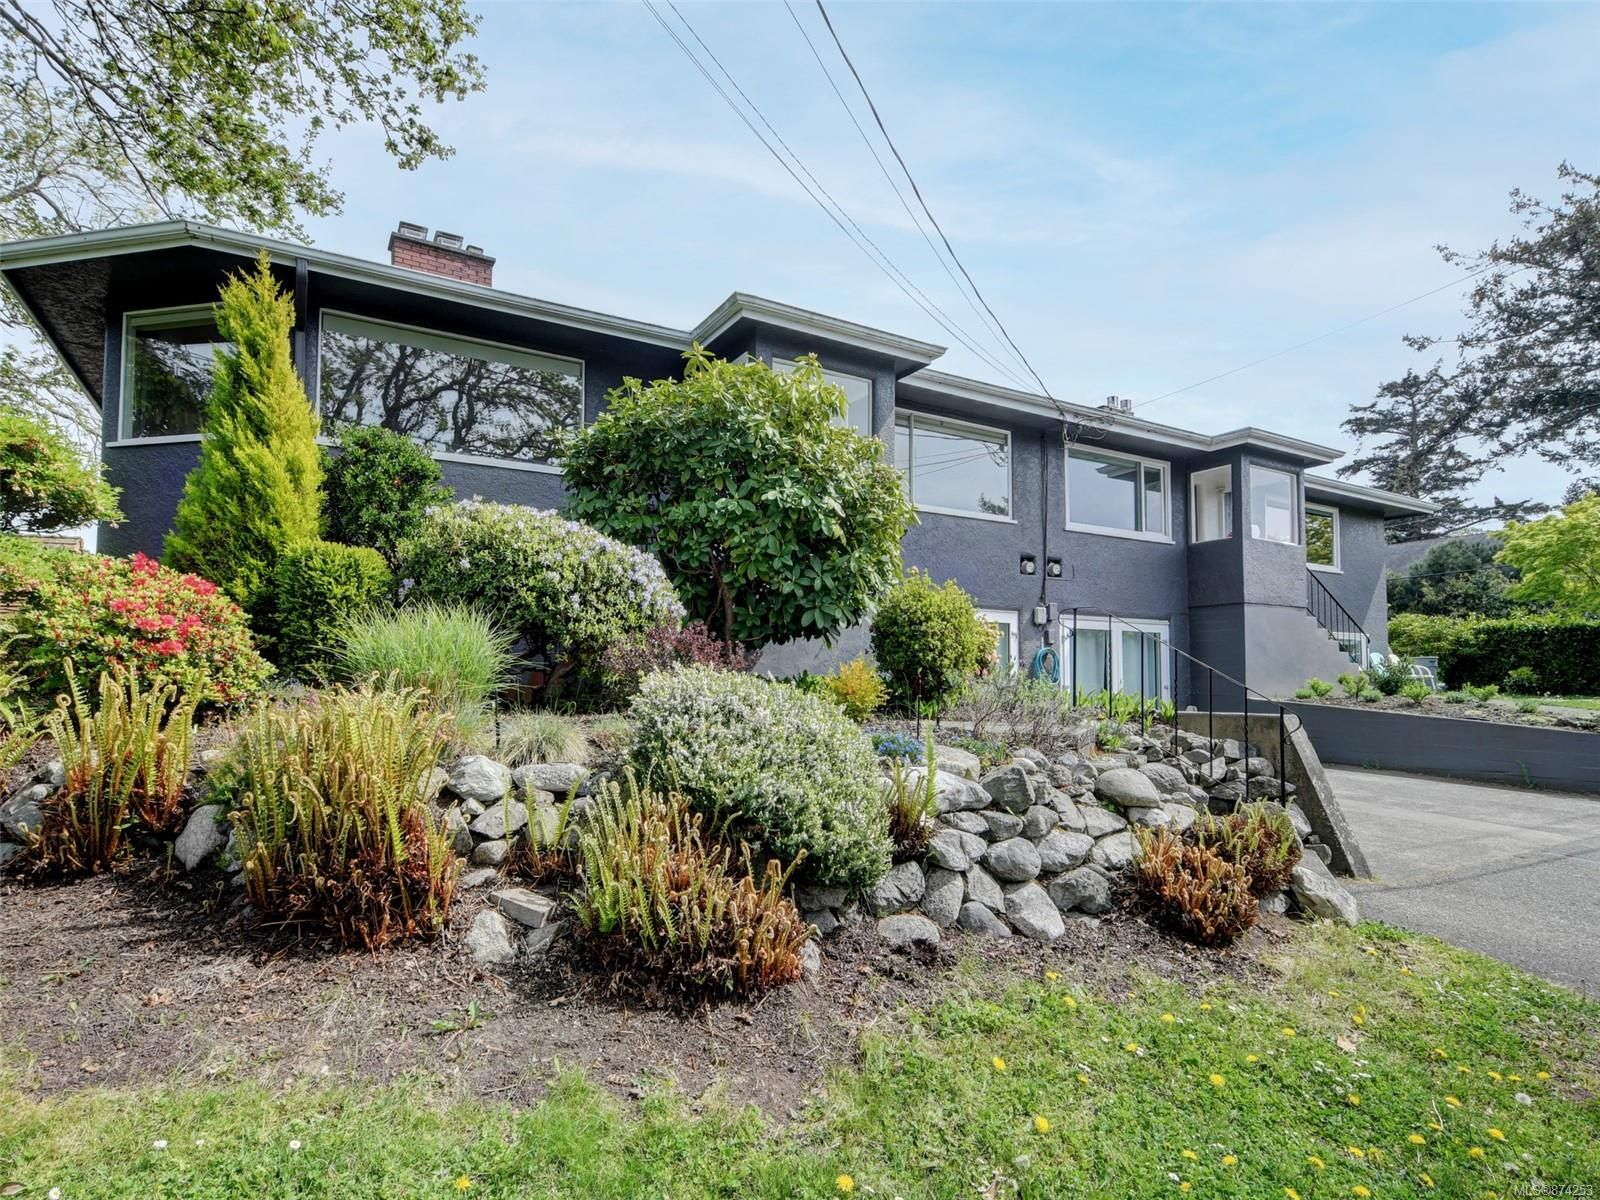 Main Photo: 355 Windermere Pl in : Vi Fairfield East Half Duplex for sale (Victoria)  : MLS®# 874253